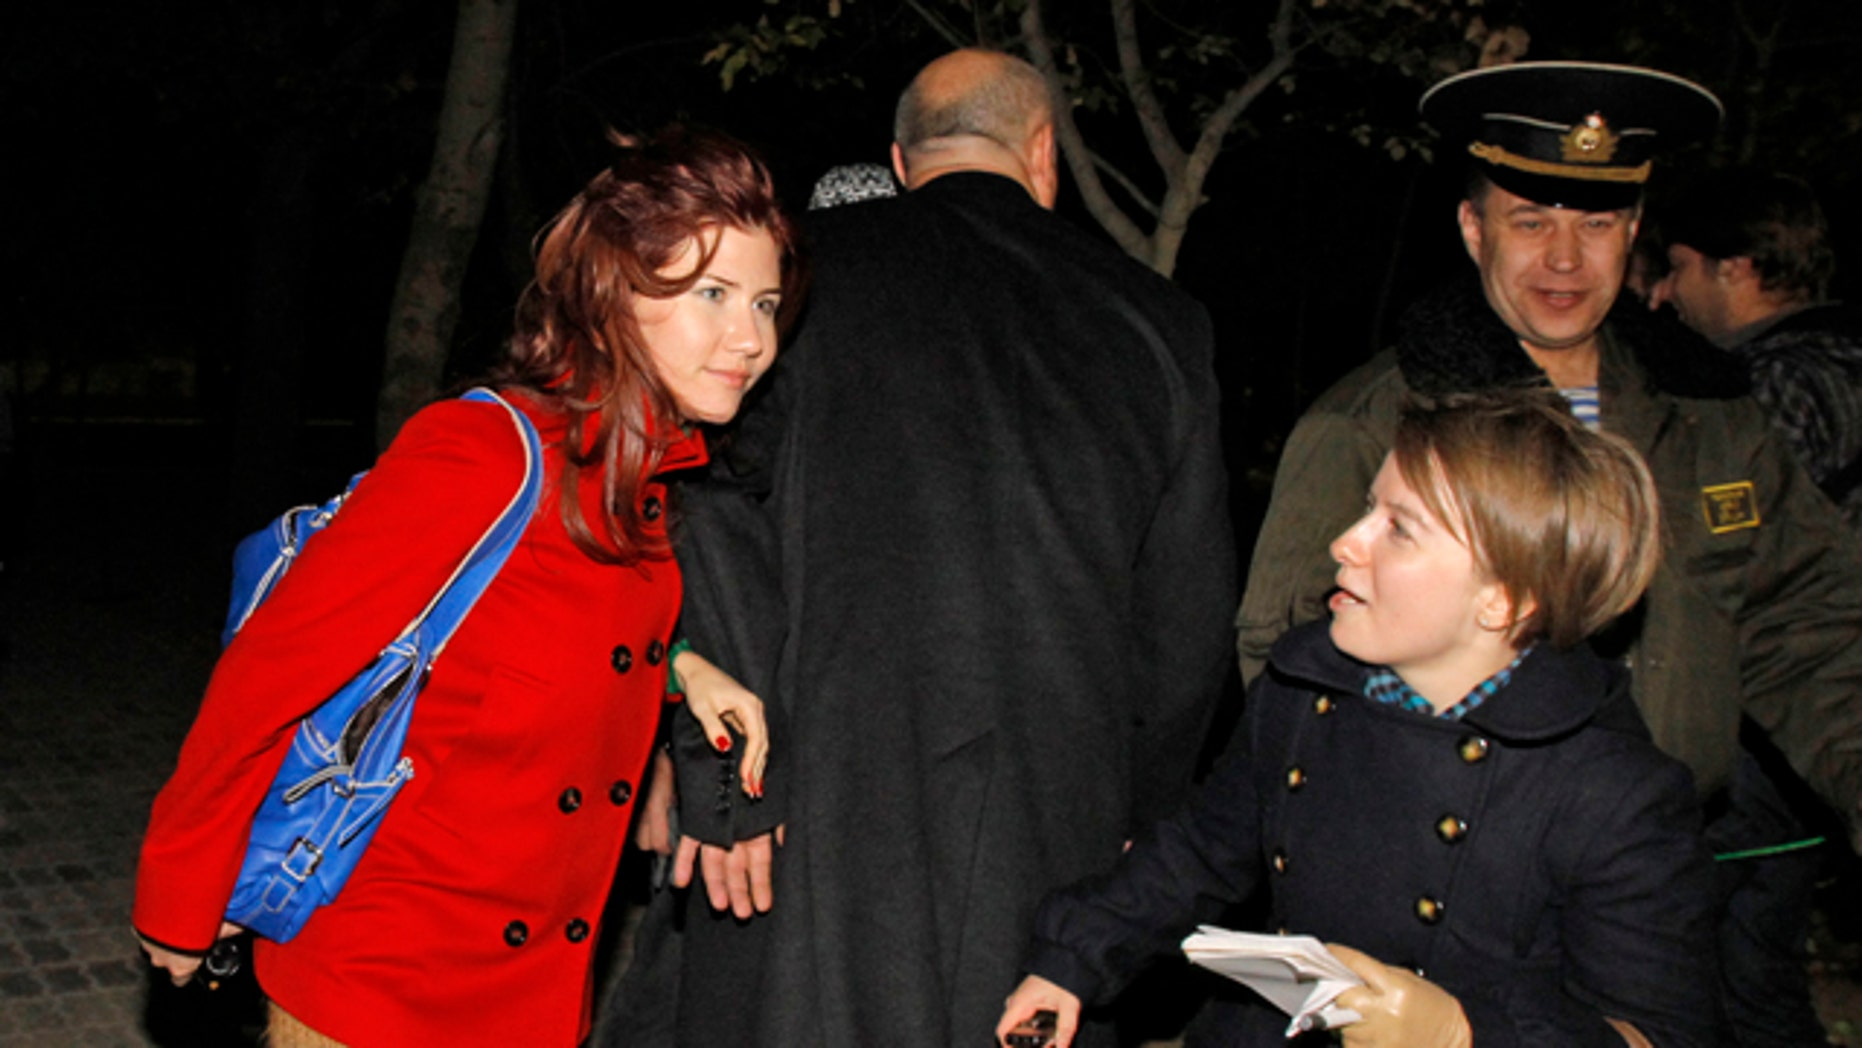 Oct. 7, 2010: Anna Chapman, left, a Russian national who was deported from the U.S. this summer for alleged spying for Russia, with AP reporter Nataliya Vasilyeva at the farewell ceremony for a U.S. astronaut and two Russian cosmonauts at the Russian leased Baikonur cosmodrome, Kazakhstan.